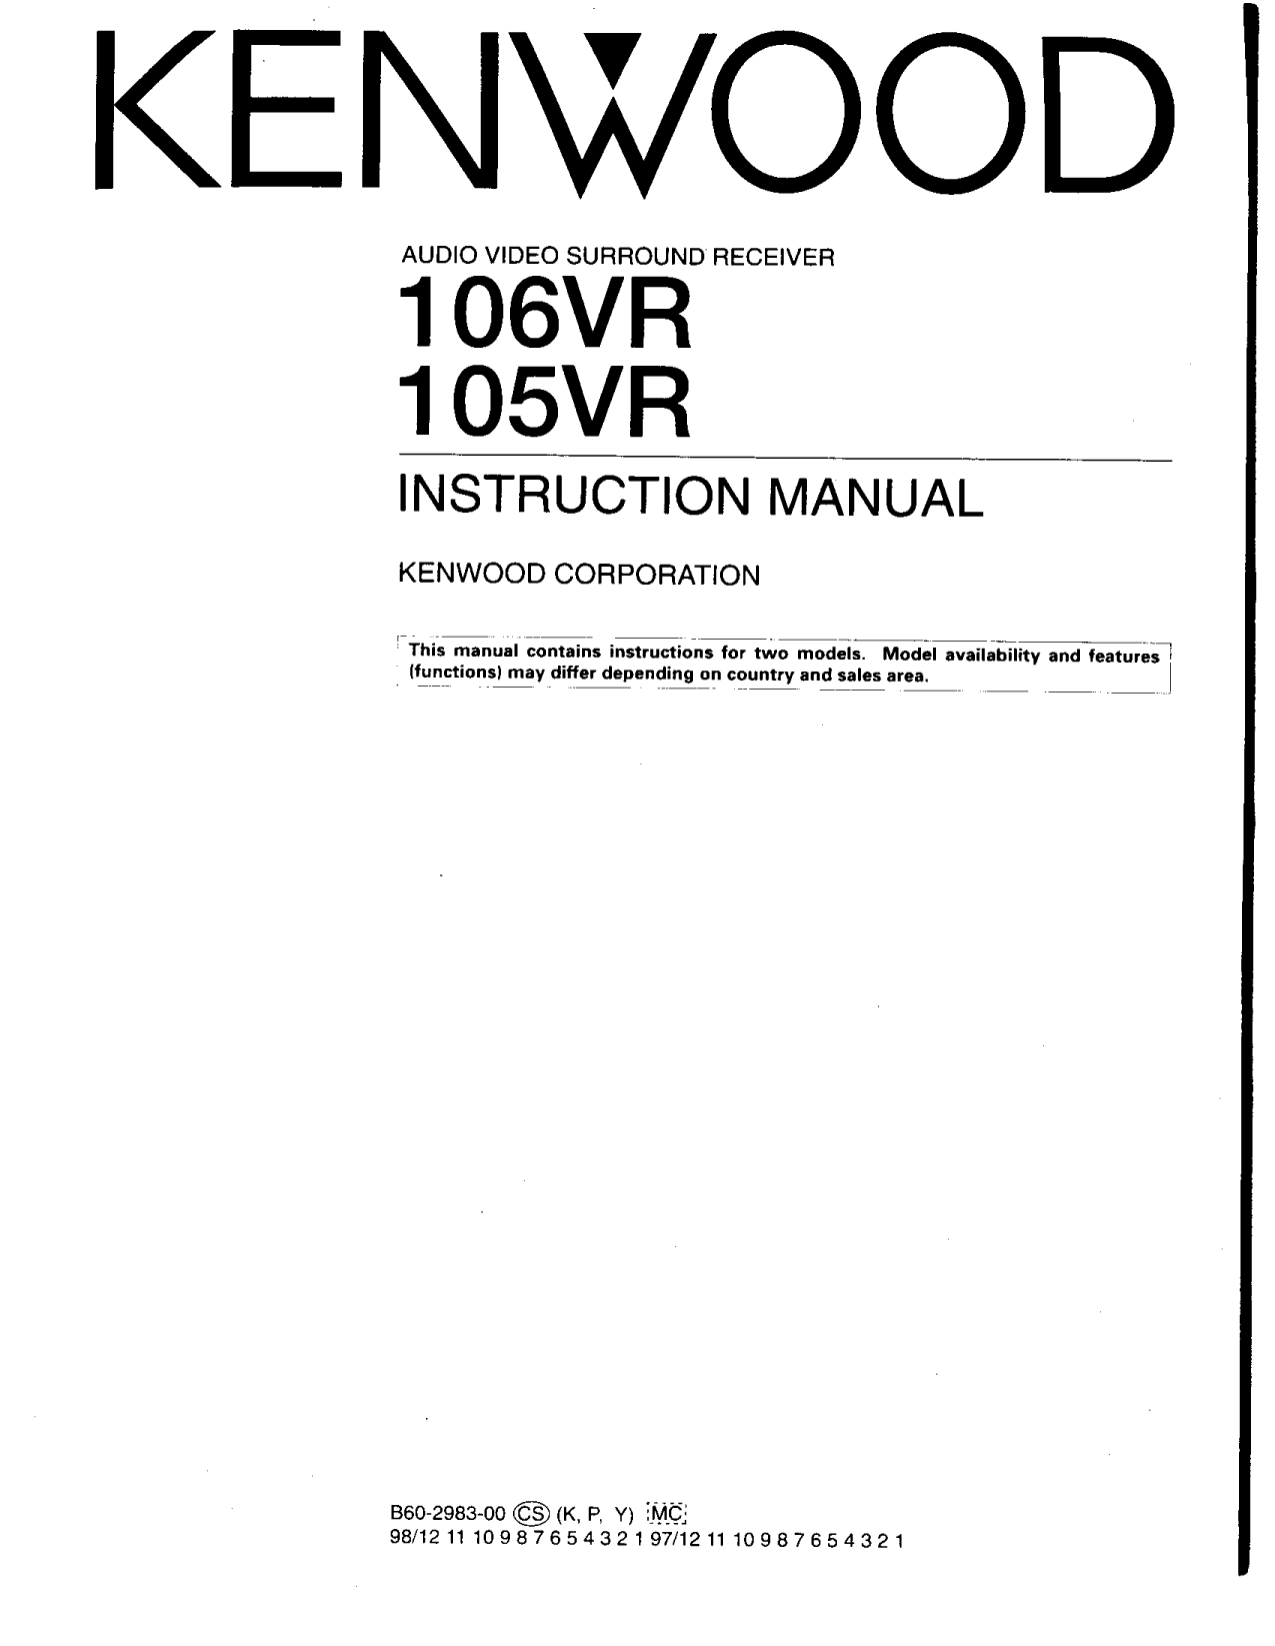 Download free pdf for Kenwood SS-79 Receiver manual